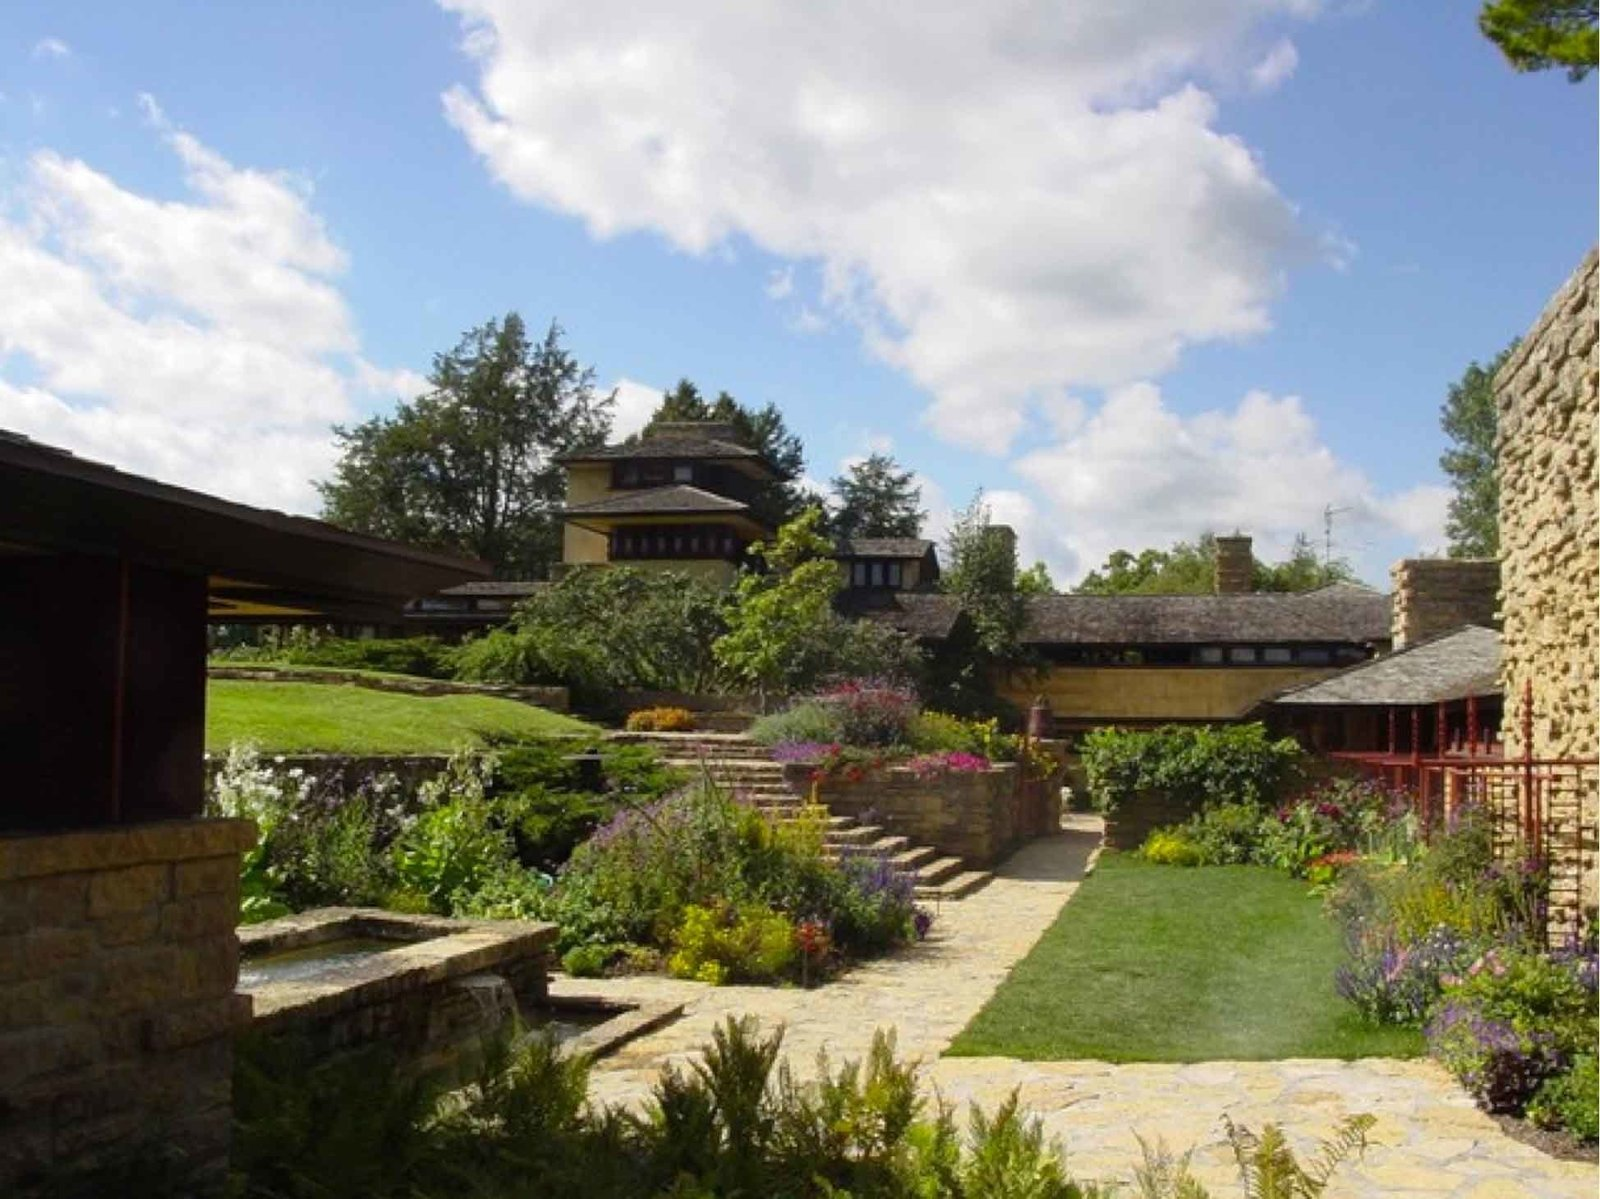 Exterior and House Building Type Taliesin (1911, Spring Green, Wisconsin). Wright's home and studio, rebuilt after two fires, is a peaceful retreat that demonstrates the architect's graceful merging of architecture and landscape.  Iconic Frank Lloyd Wright Buildings by Allie Weiss